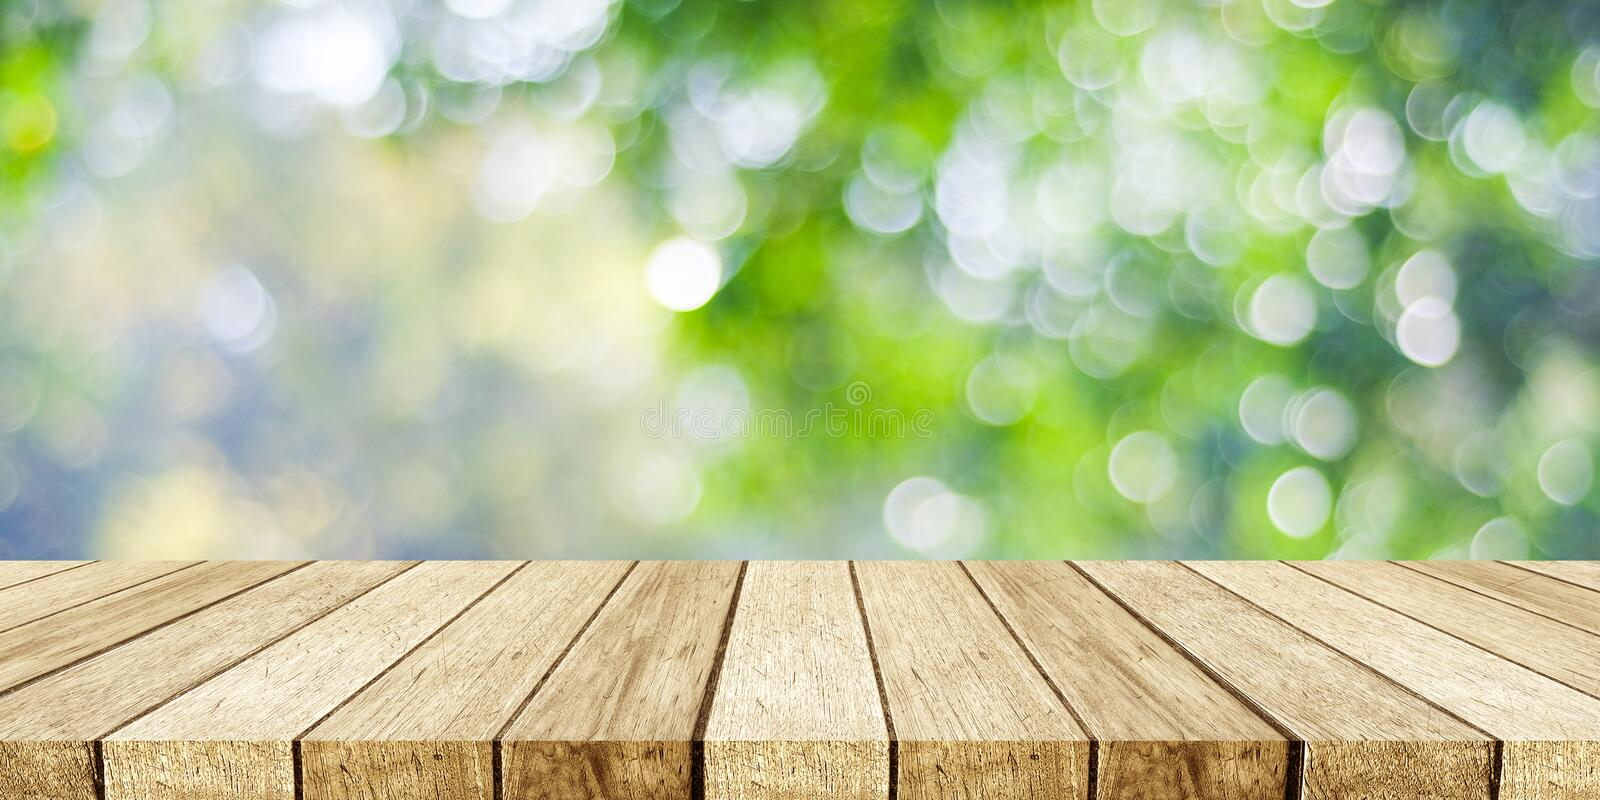 Perspective wood and blur outdoor park nature background, produc royalty free stock photo